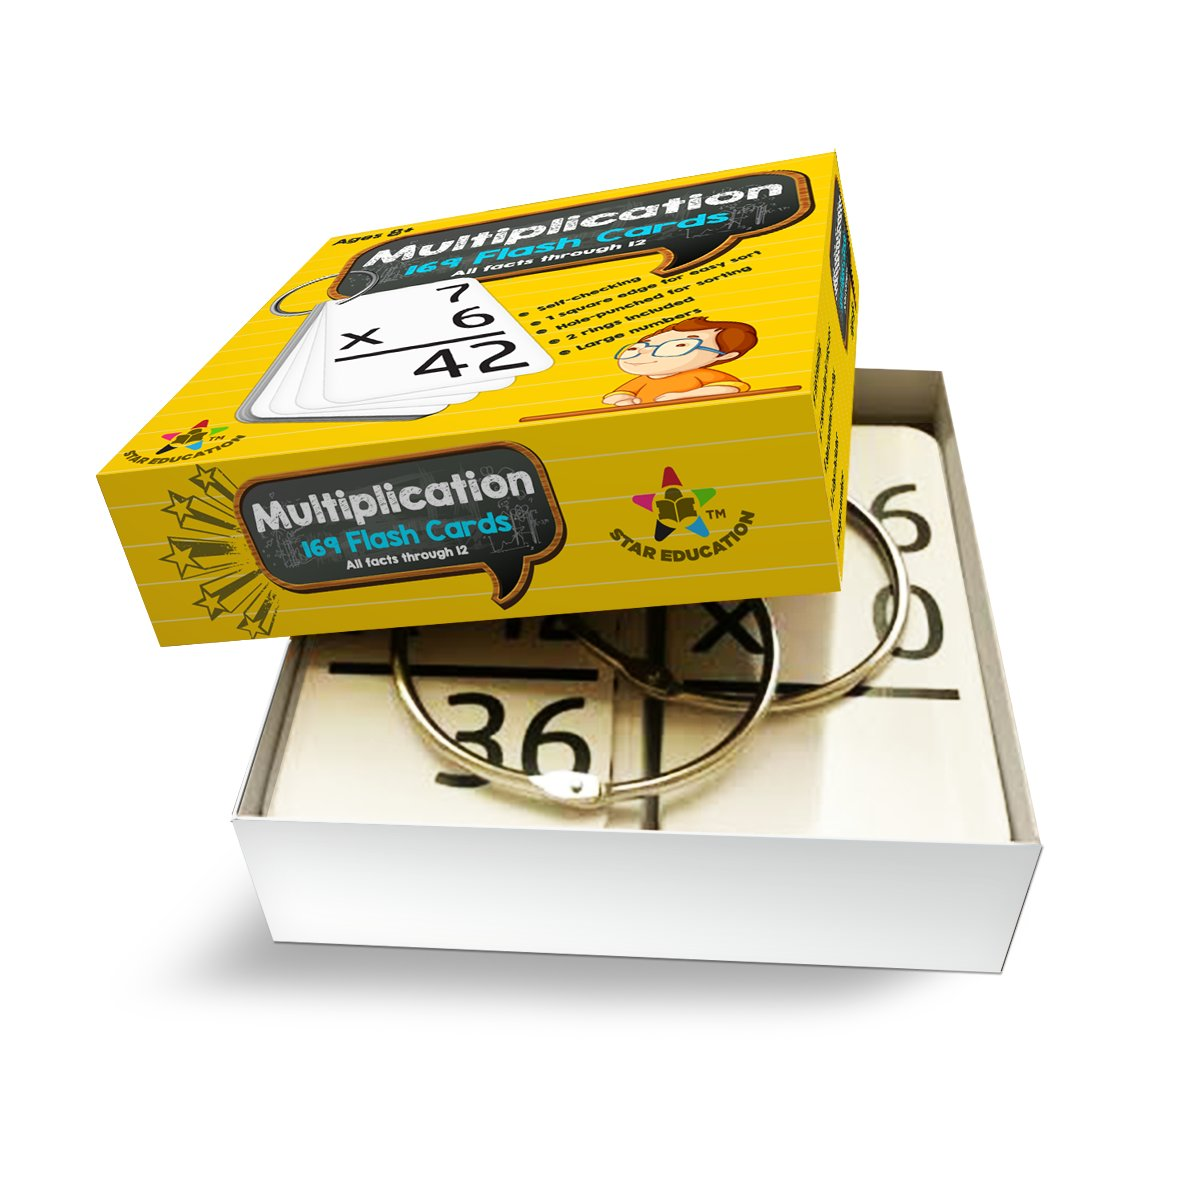 Star Education Multiplication Flash Cards, 0-12 (All Facts-169 Cards) With 2 Rings by Star Right (Image #5)